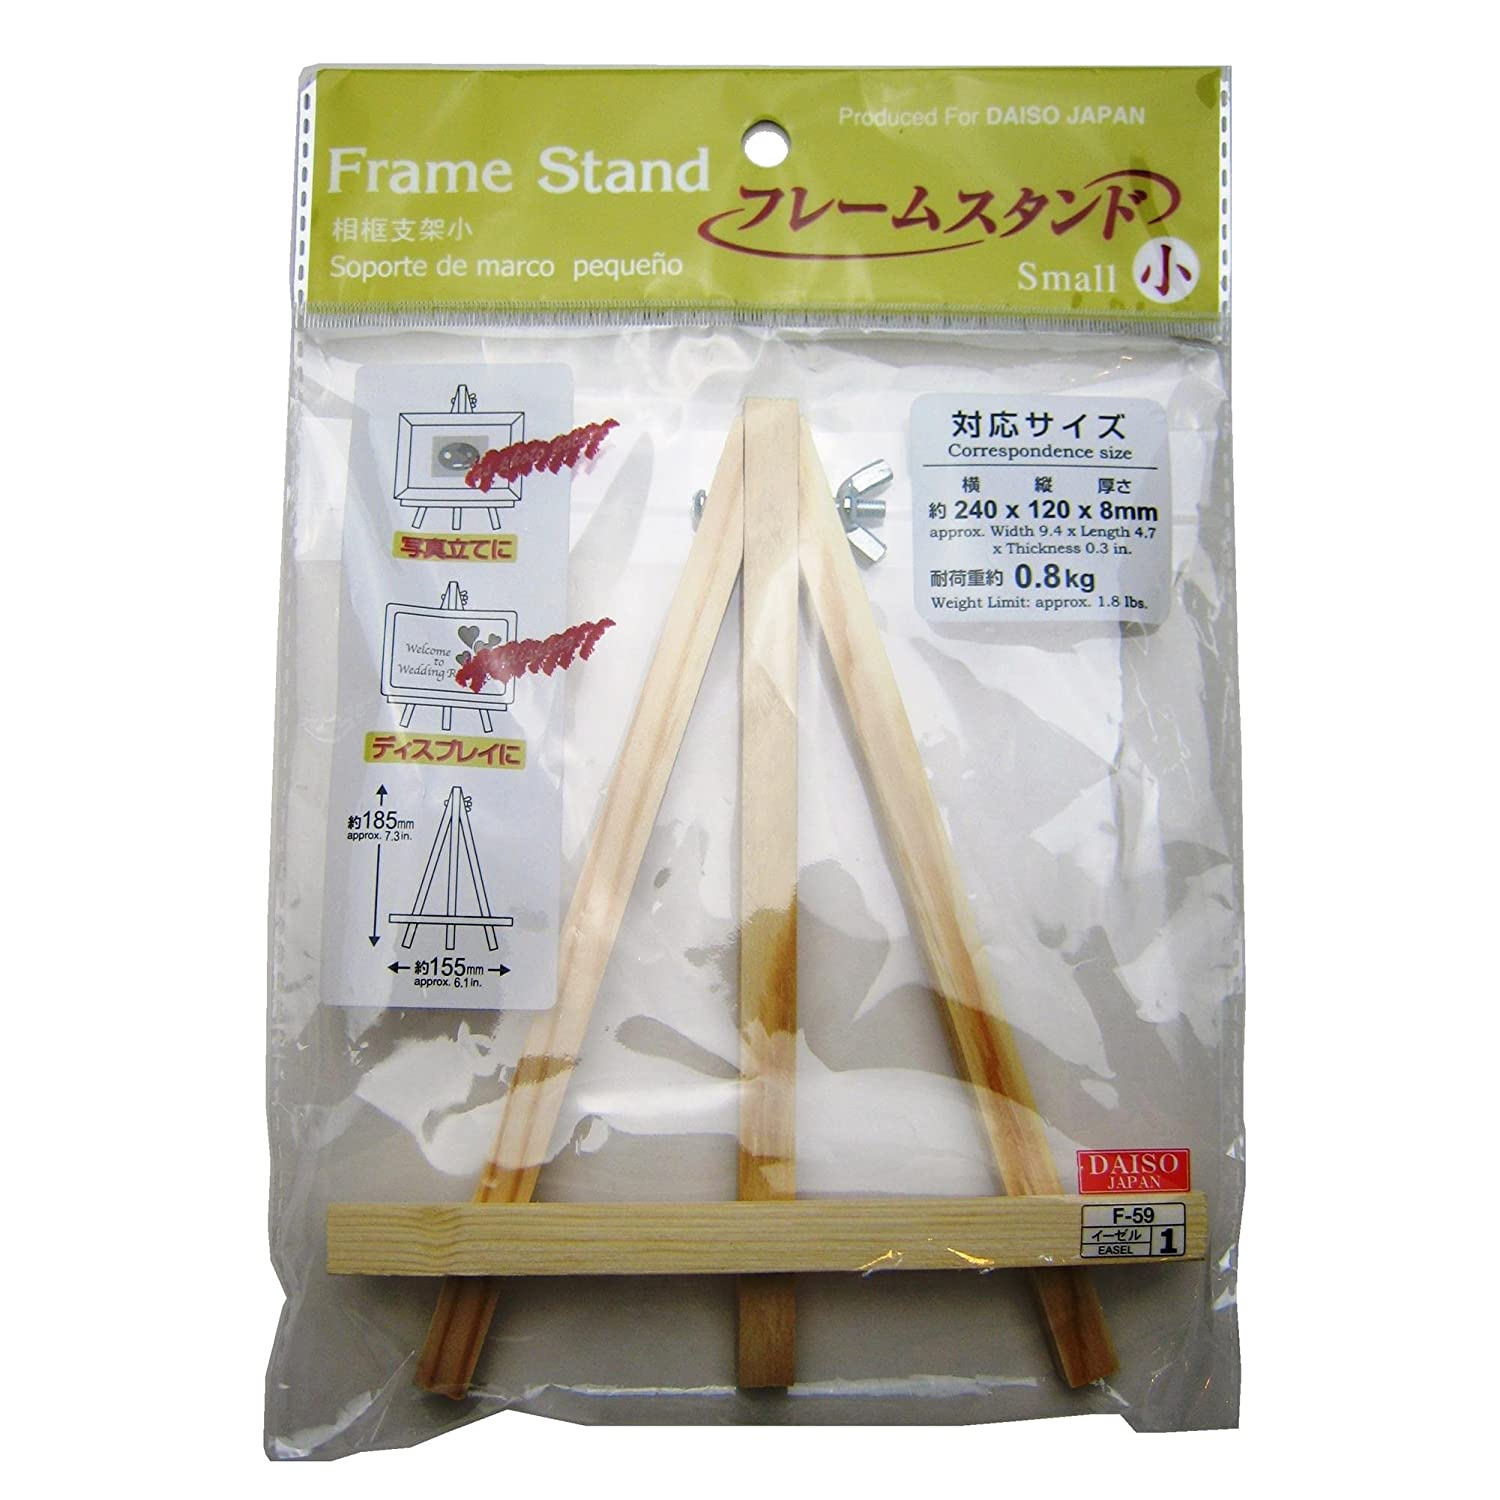 Daiso Japan Easel Style Wooden Tripod Frame Stand, Small: Amazon.co ...